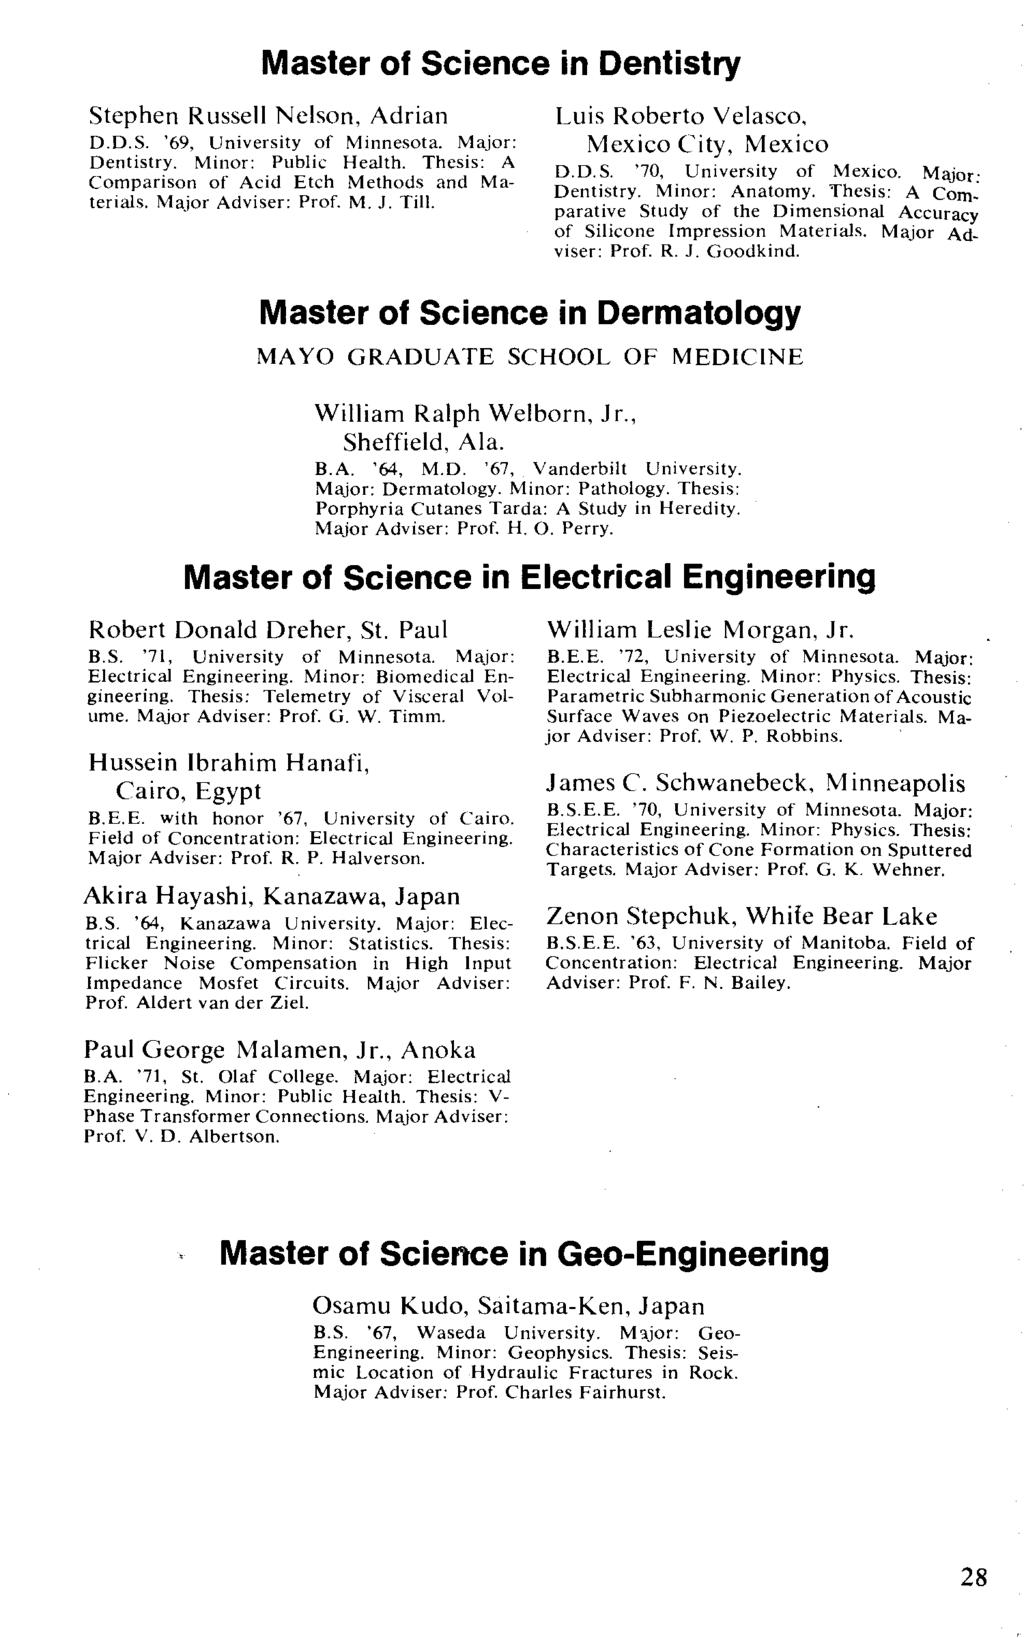 Master of Science in Dentistry Stephen Russell Nelson, Adrian D.D.S. '69, University of Minnesota. Major: Dentistry. Minor: Public Health. Thesis: A Comparison of Acid Etch Methods and Materials.